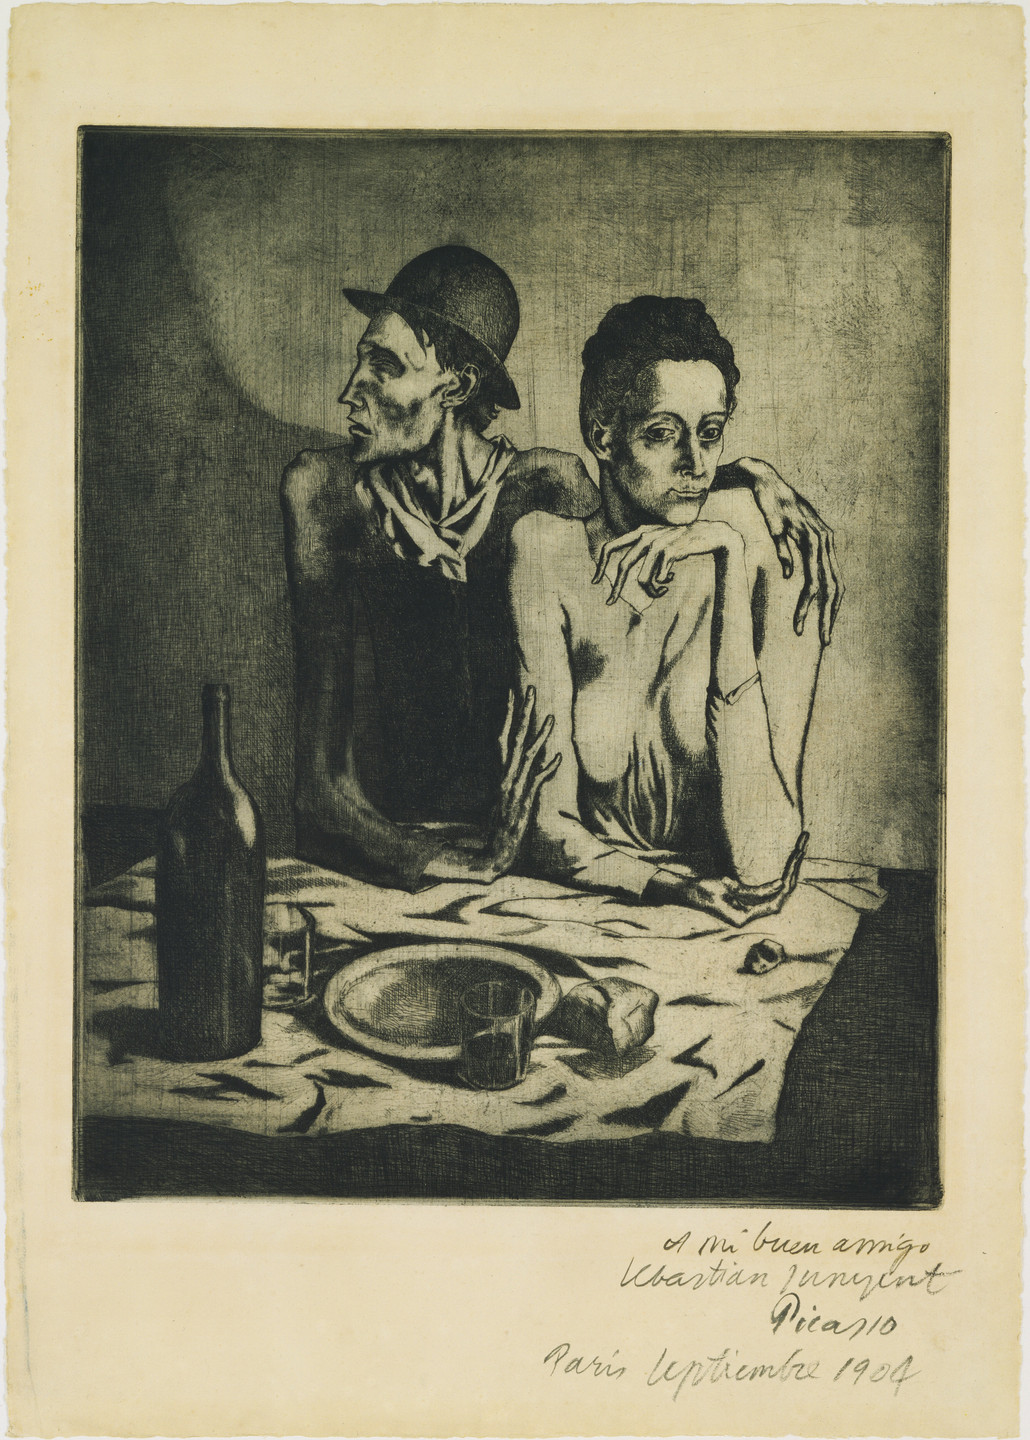 Pablo Picasso. The Frugal Repast (Le Repas frugal ) from the Saltimbanques series. 1904